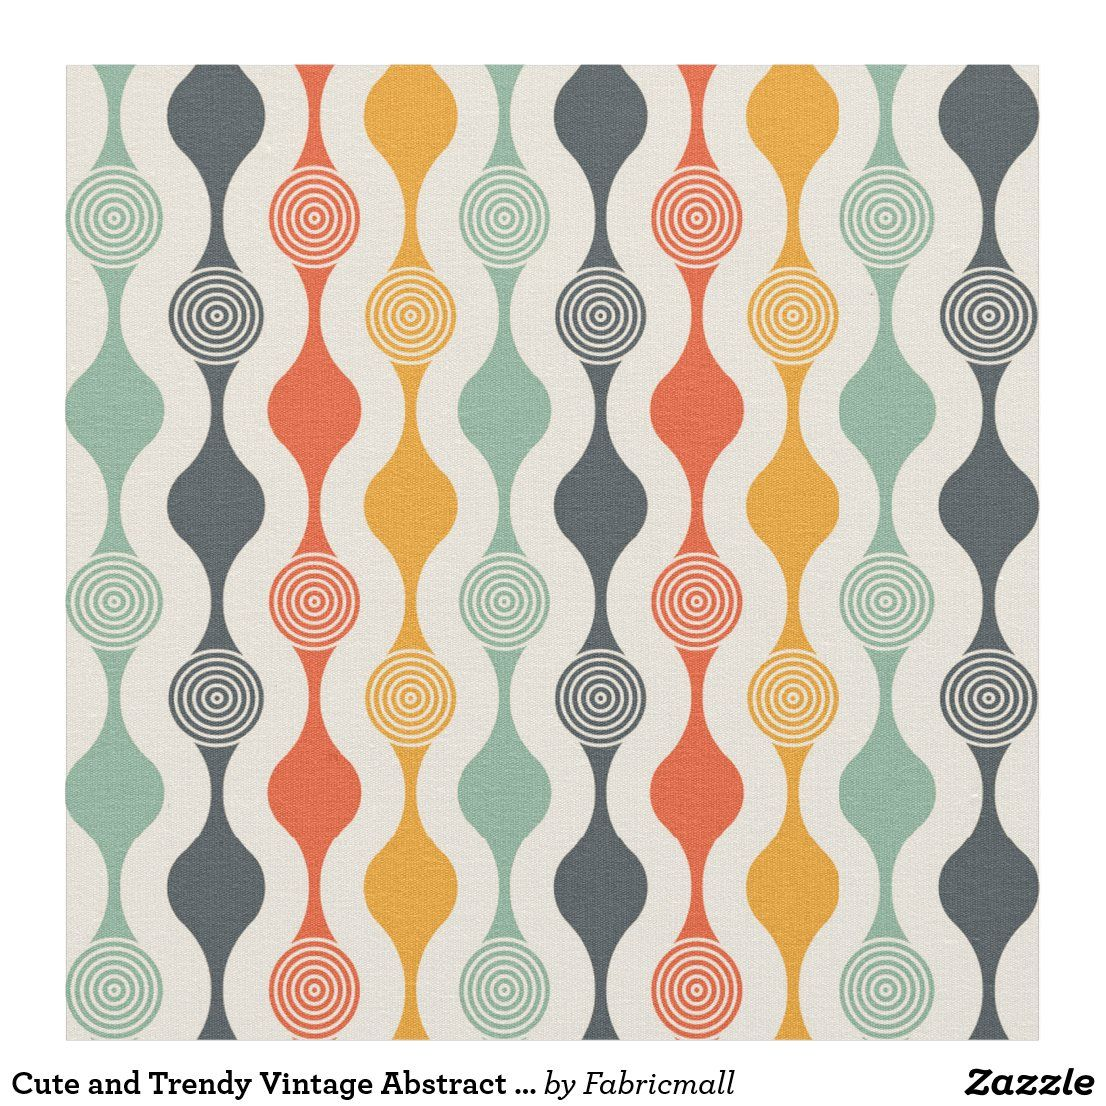 Cute And Trendy Vintage Abstract Fabric In 2020 Modern Upholstery Fabric Scandinavian Fabric Scandinavian Fabric Design